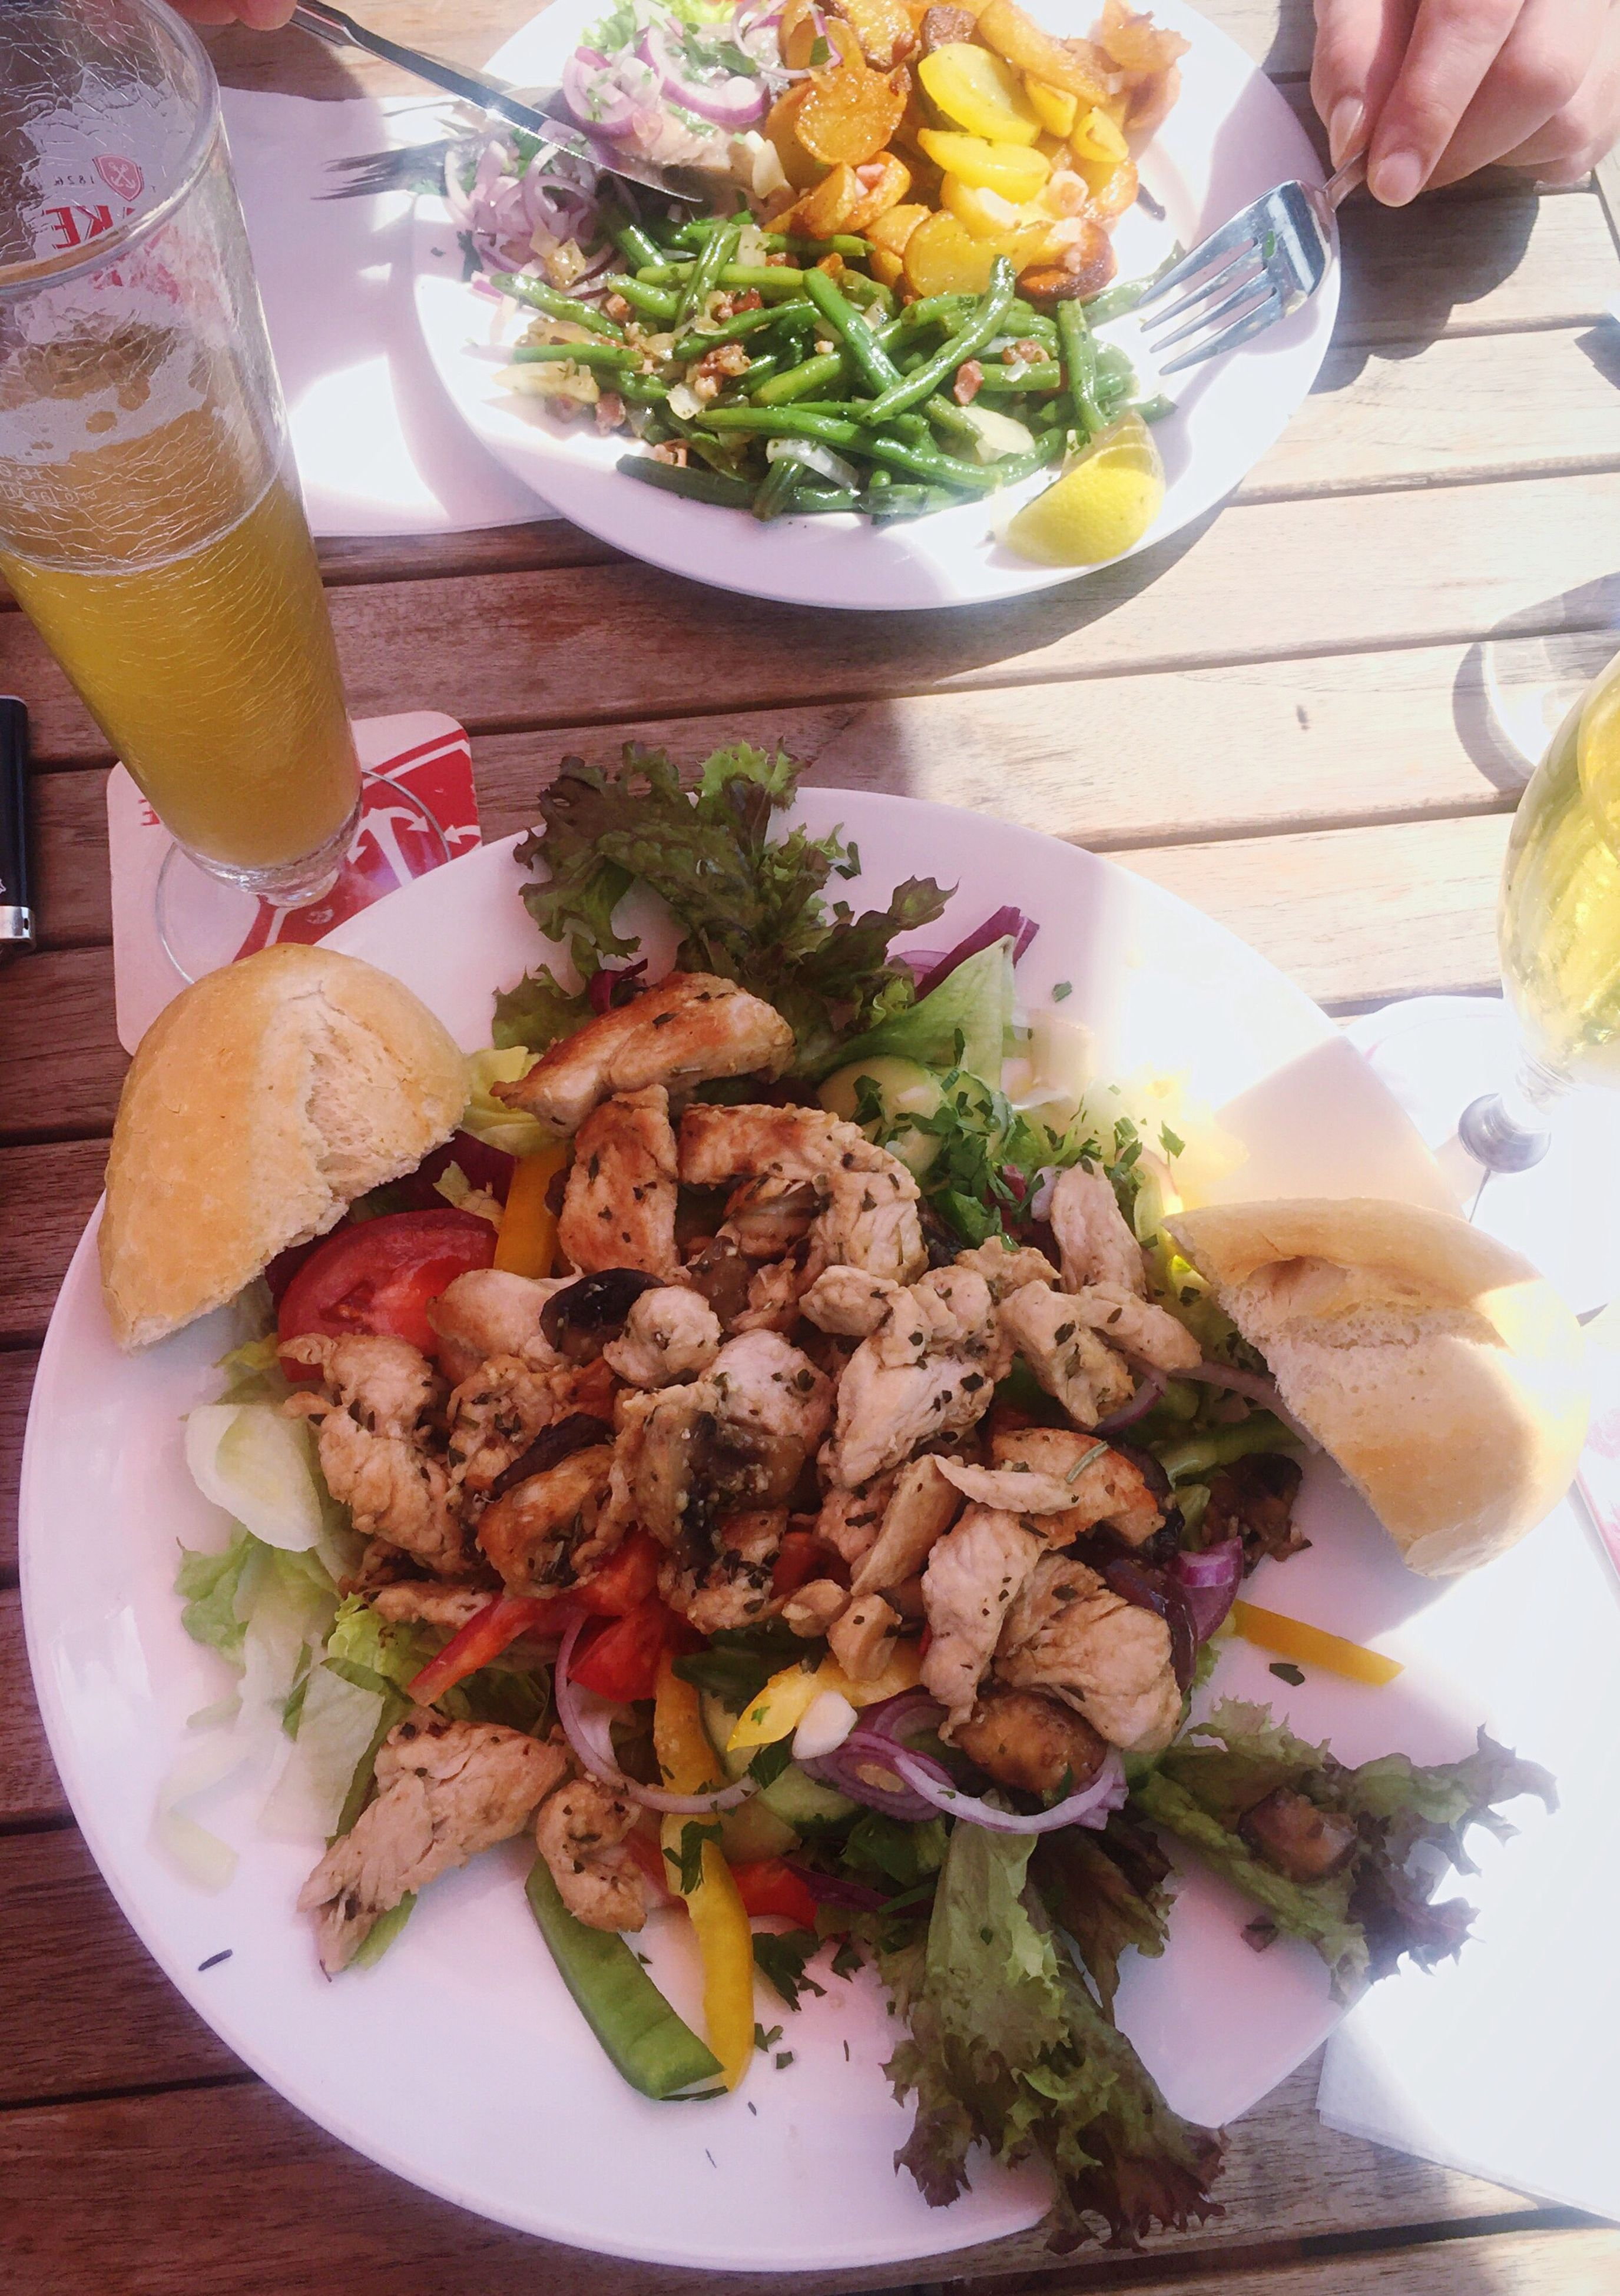 food and drink, table, freshness, food, plate, ready-to-eat, serving size, drink, human hand, healthy eating, indoors, salad, high angle view, drinking glass, alcohol, human body part, close-up, day, one person, people